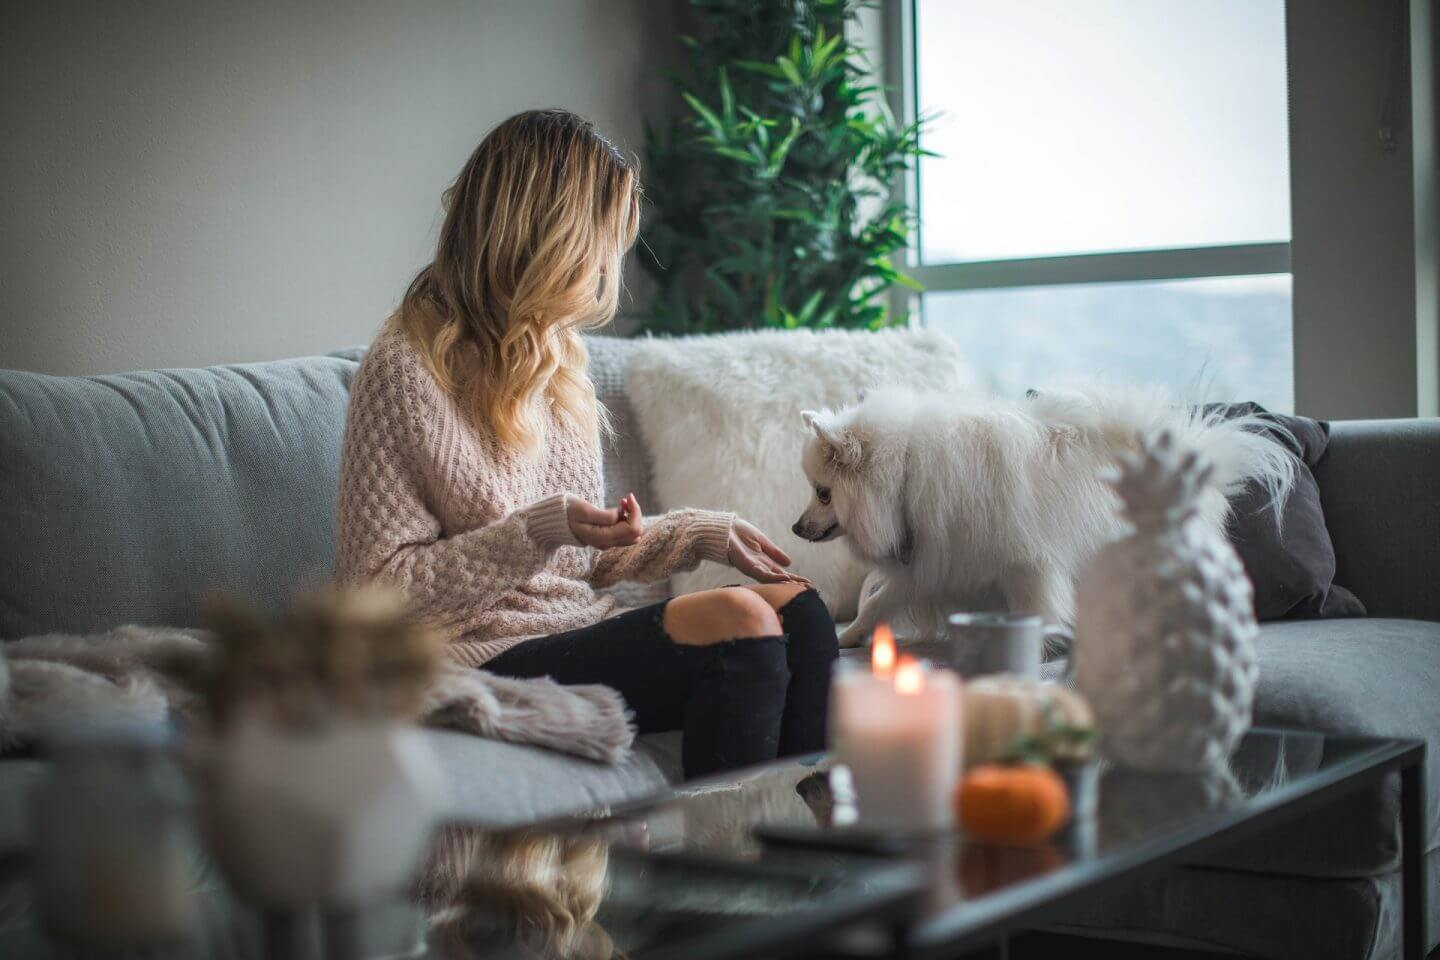 A young woman sits on a white couch with feeding a white dog a treat with candles in the foreground  Why Do People Hire a House Sitter?   bucketlistmylife.com